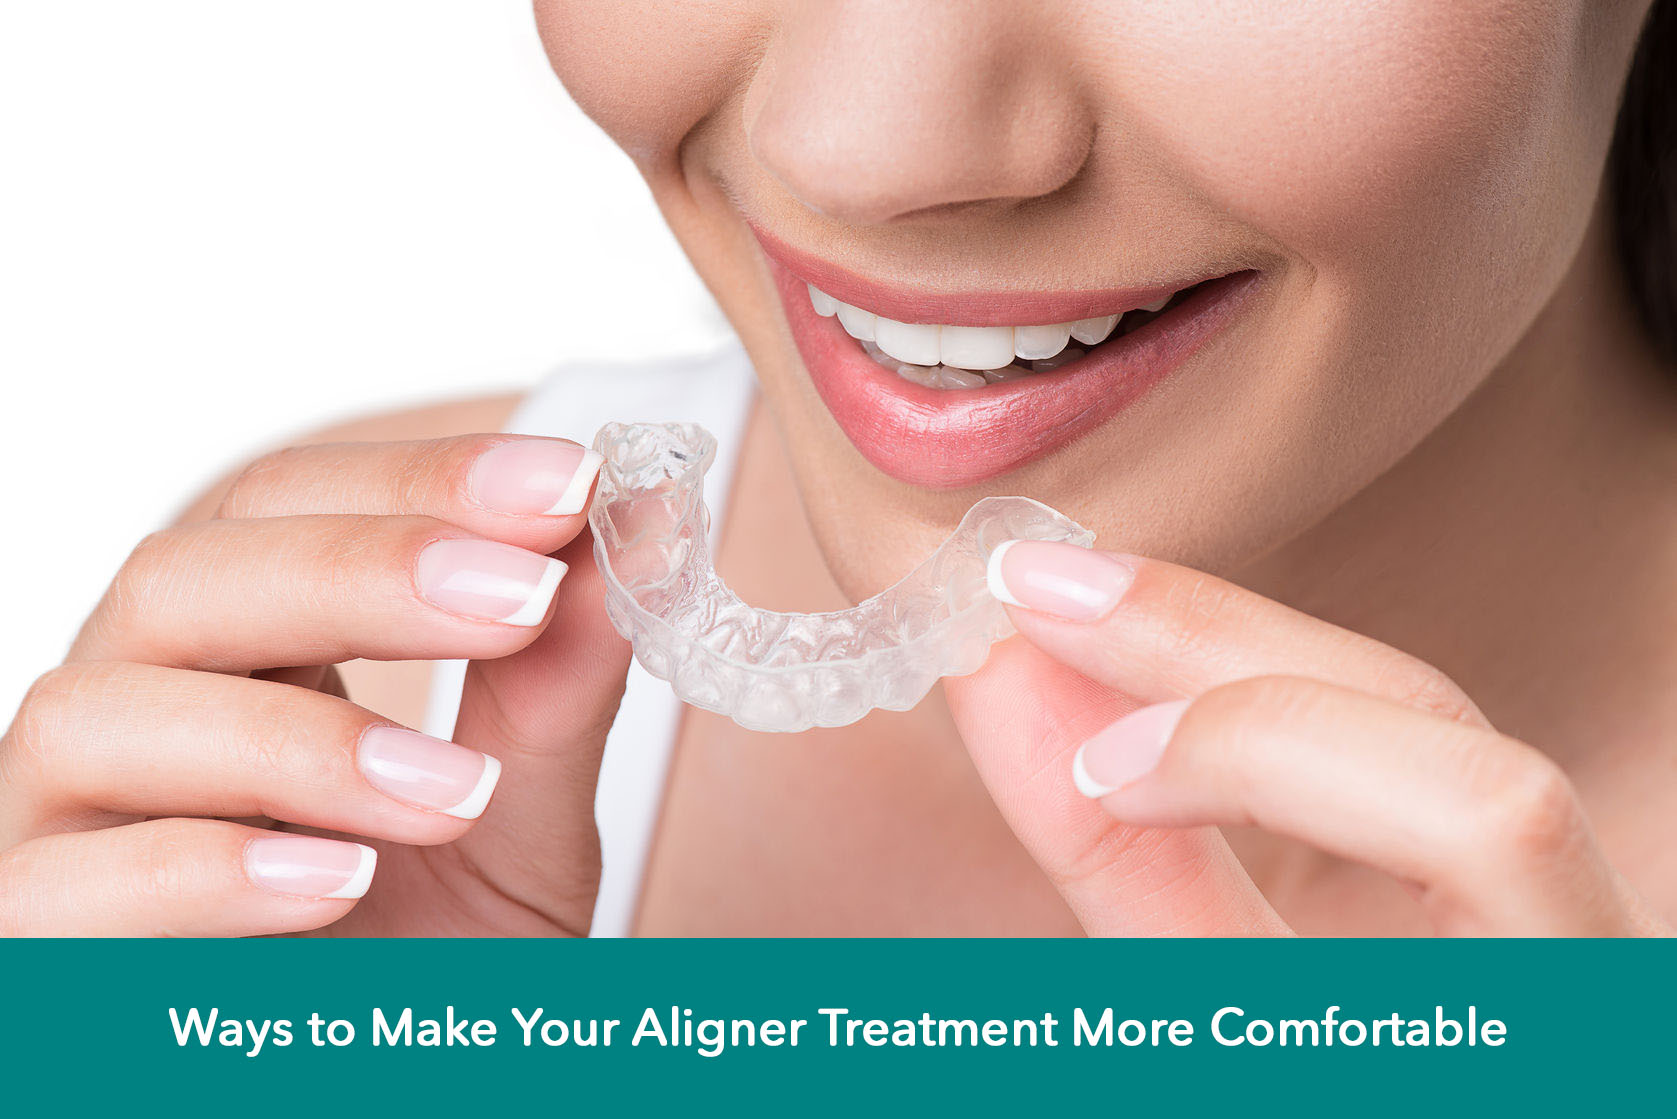 Ways to Make Your Aligner Treatment More Comfortable